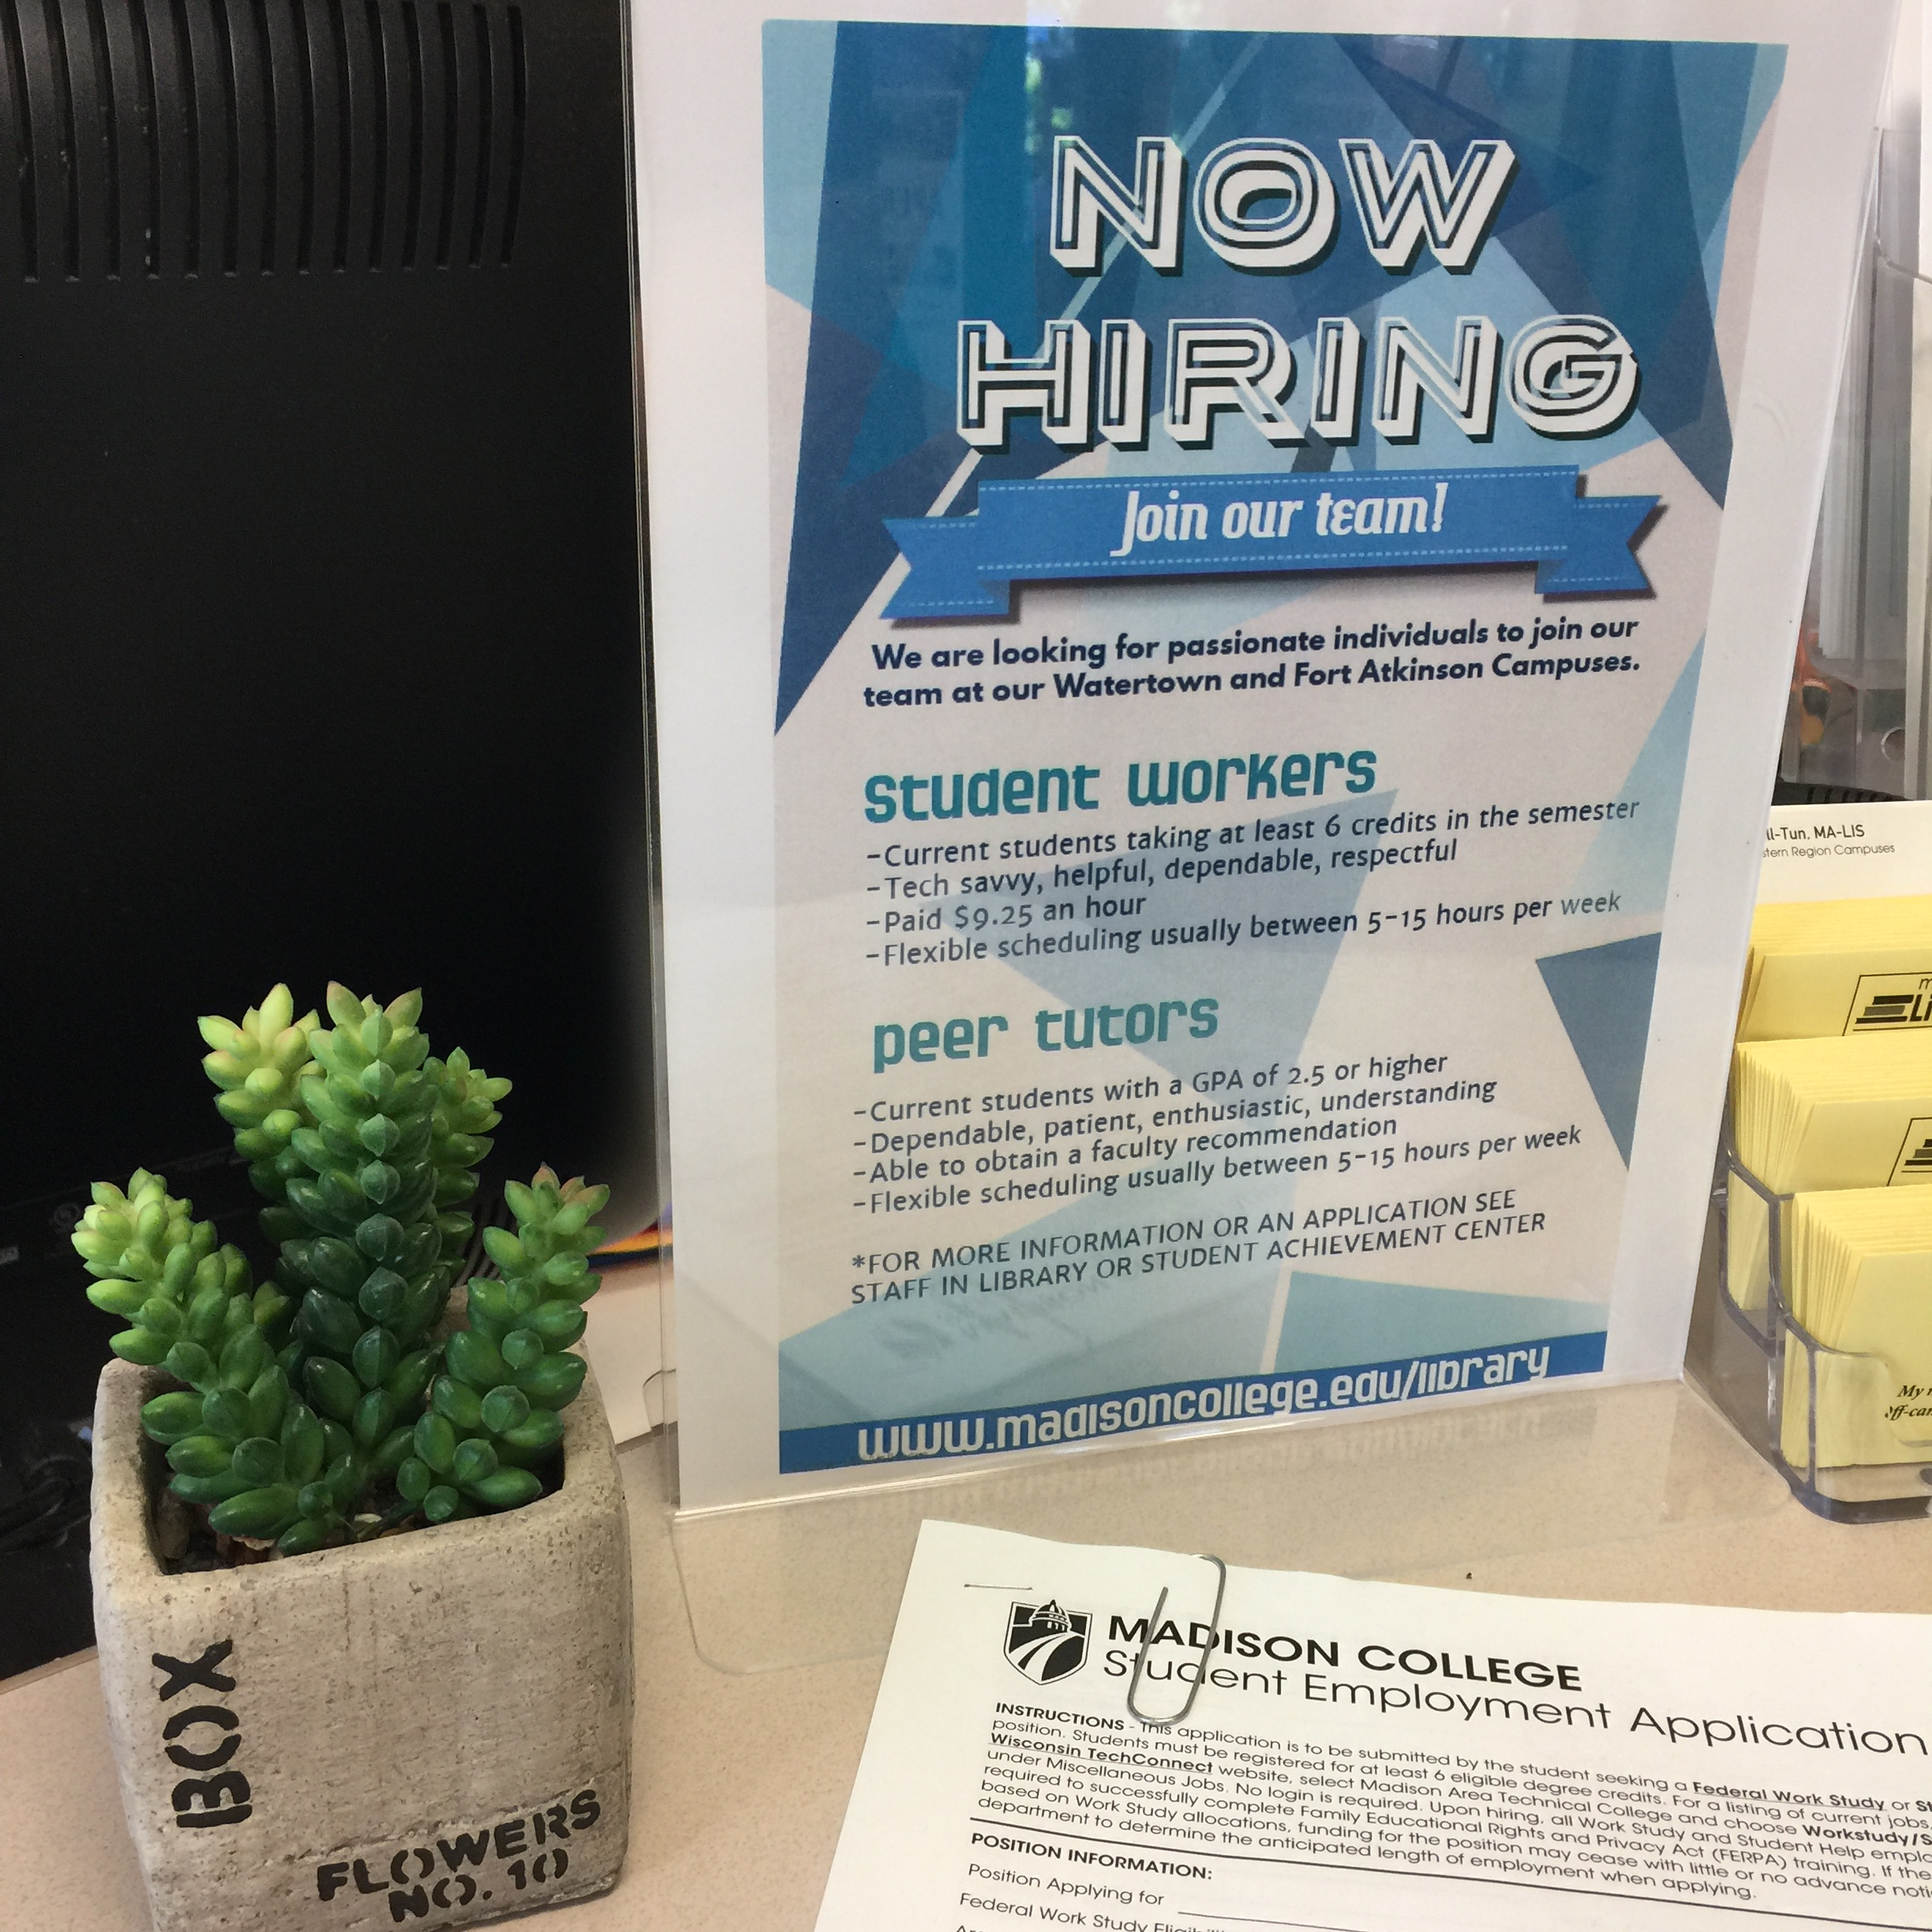 Now Hiring sign with plant